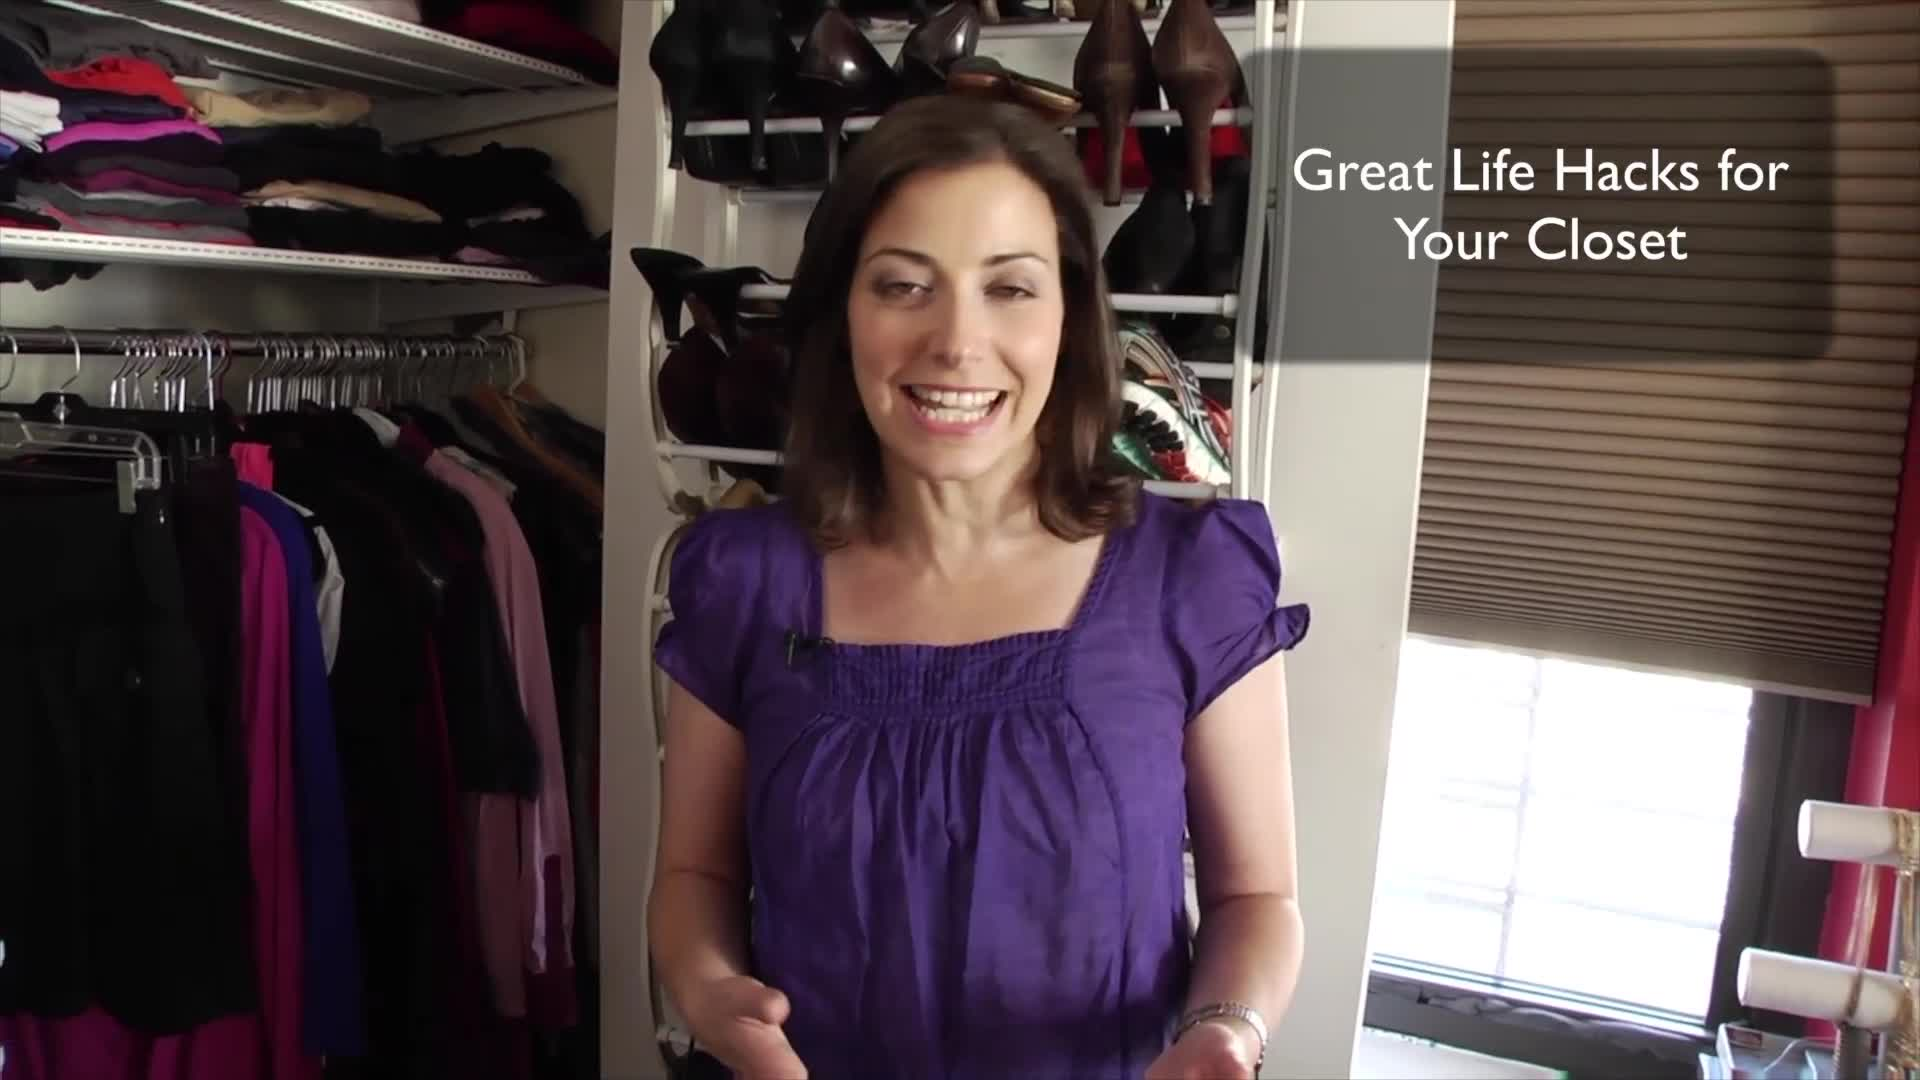 3 Simple Ways to Maximize Your Closet Space